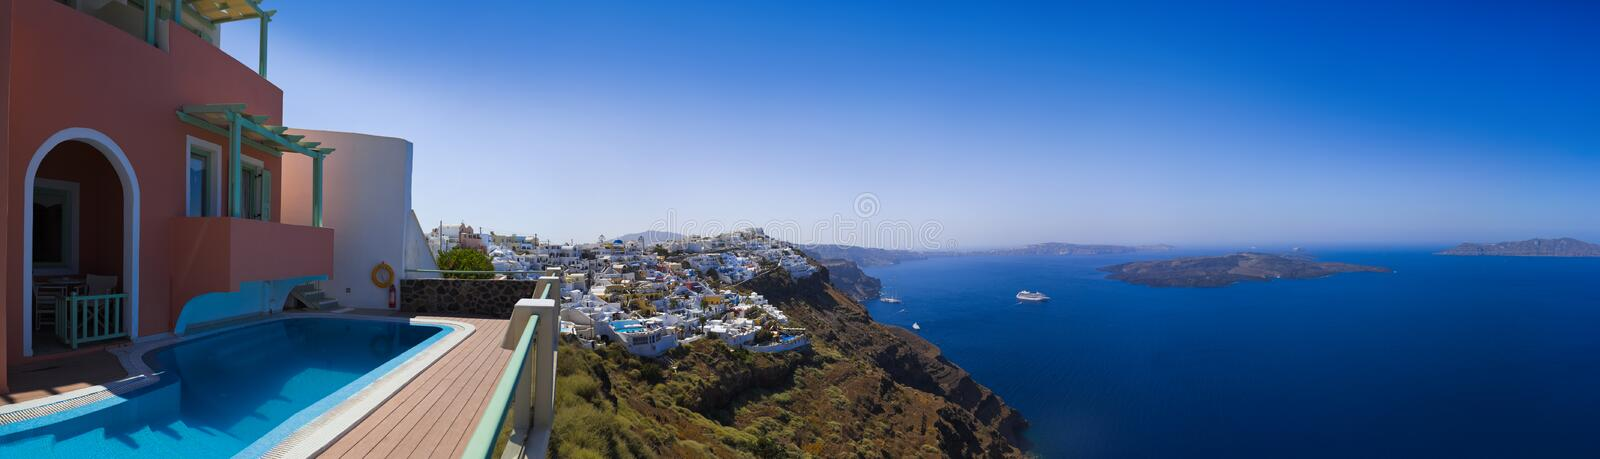 Panorama de Santorini - Greece foto de stock royalty free